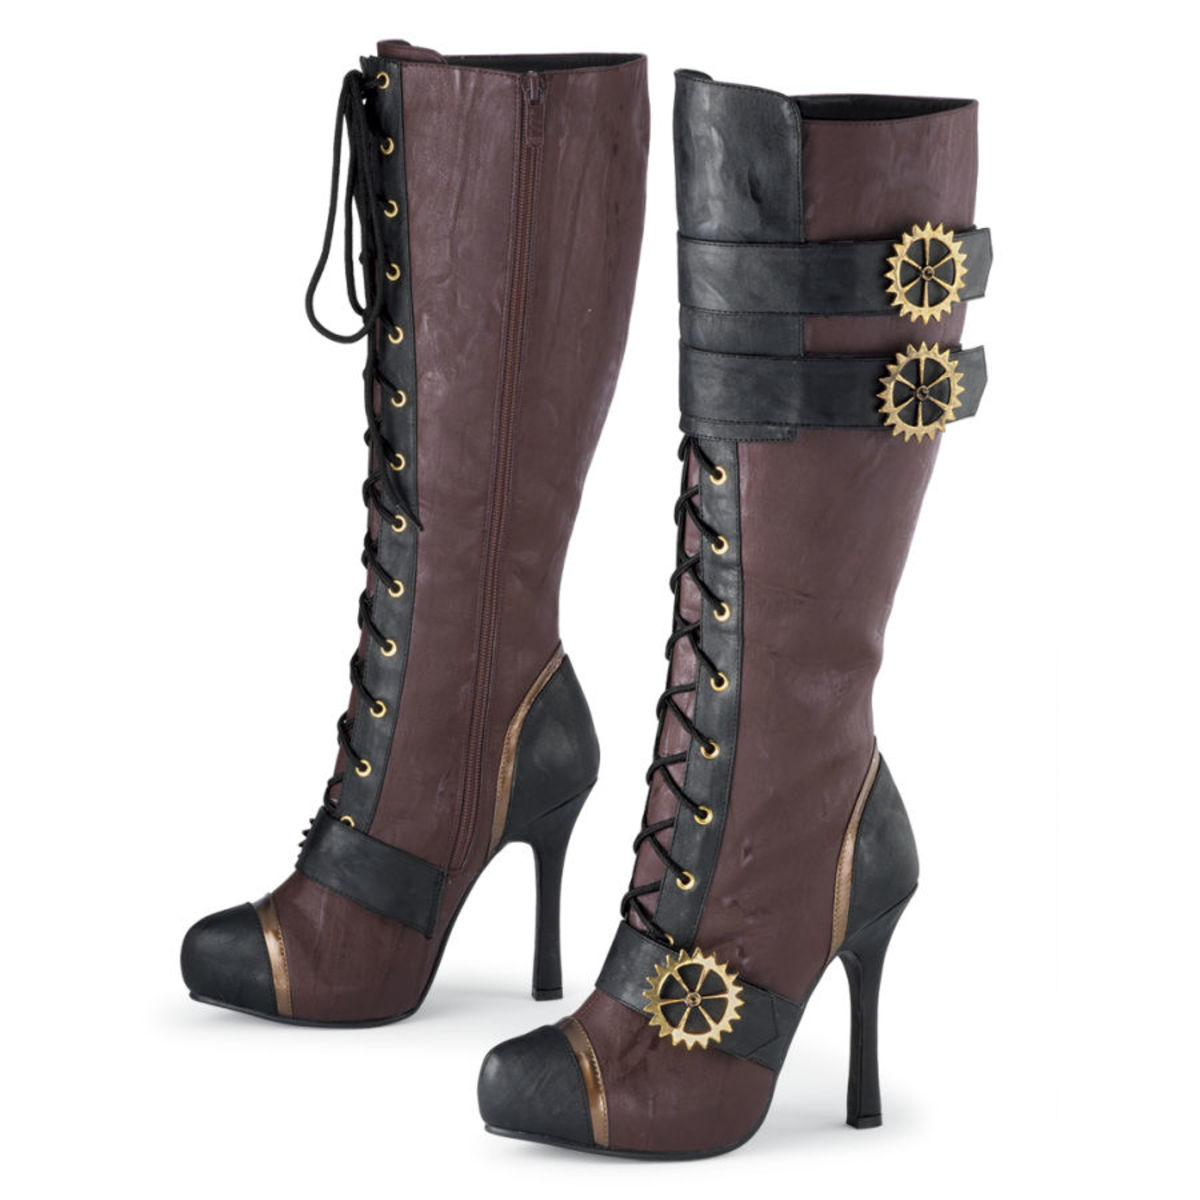 Steampunk Power Boots $90